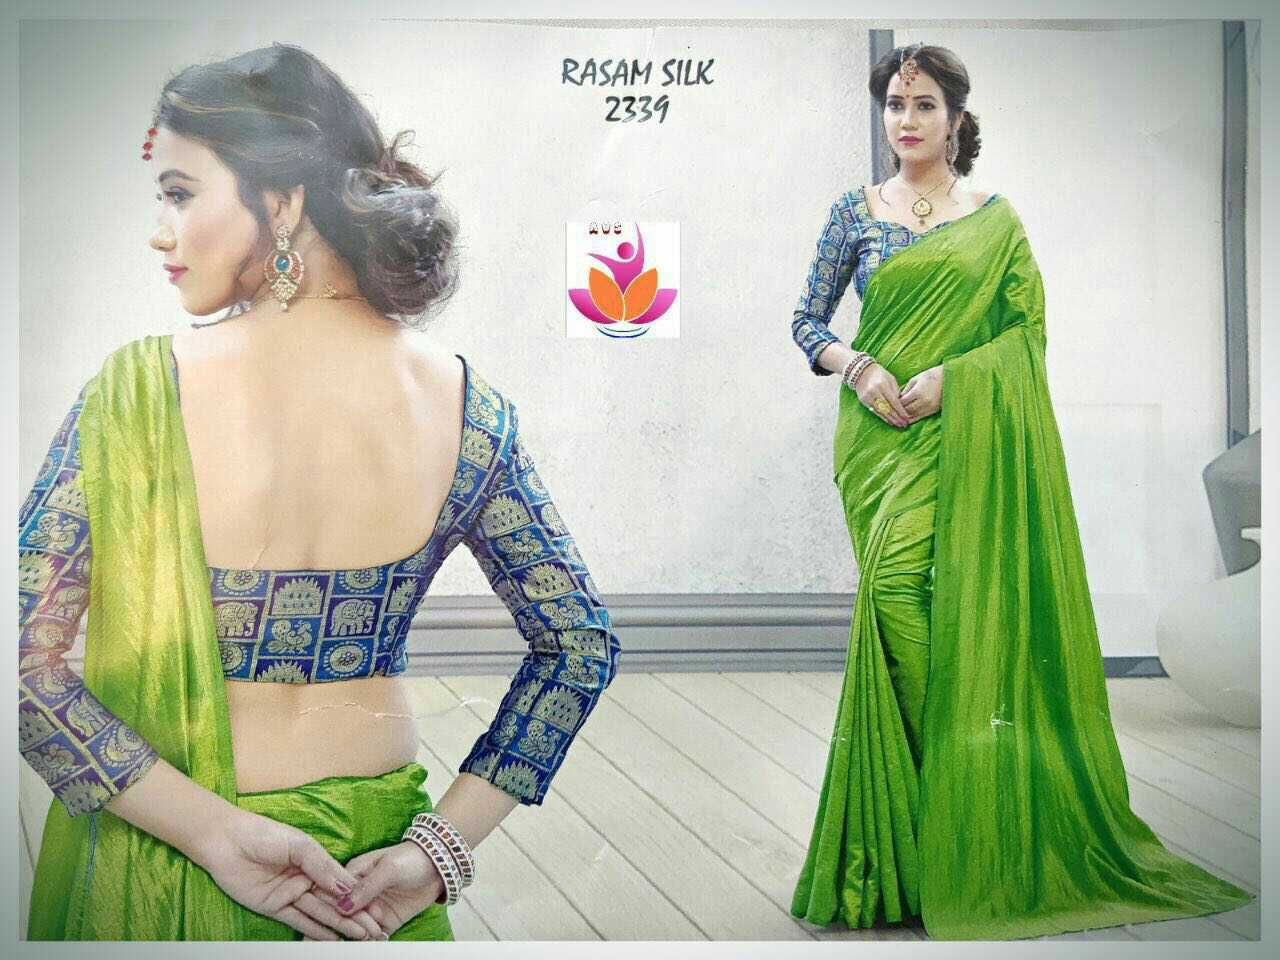 940ef7df9f0264 Material - Silky silk plain sarees 🍁 Saree is with Beutiful Peacock  Elephant thread Weaved Banarasi silk Blouse 🦋🦋 💐Soft n Shiny Cloth💐